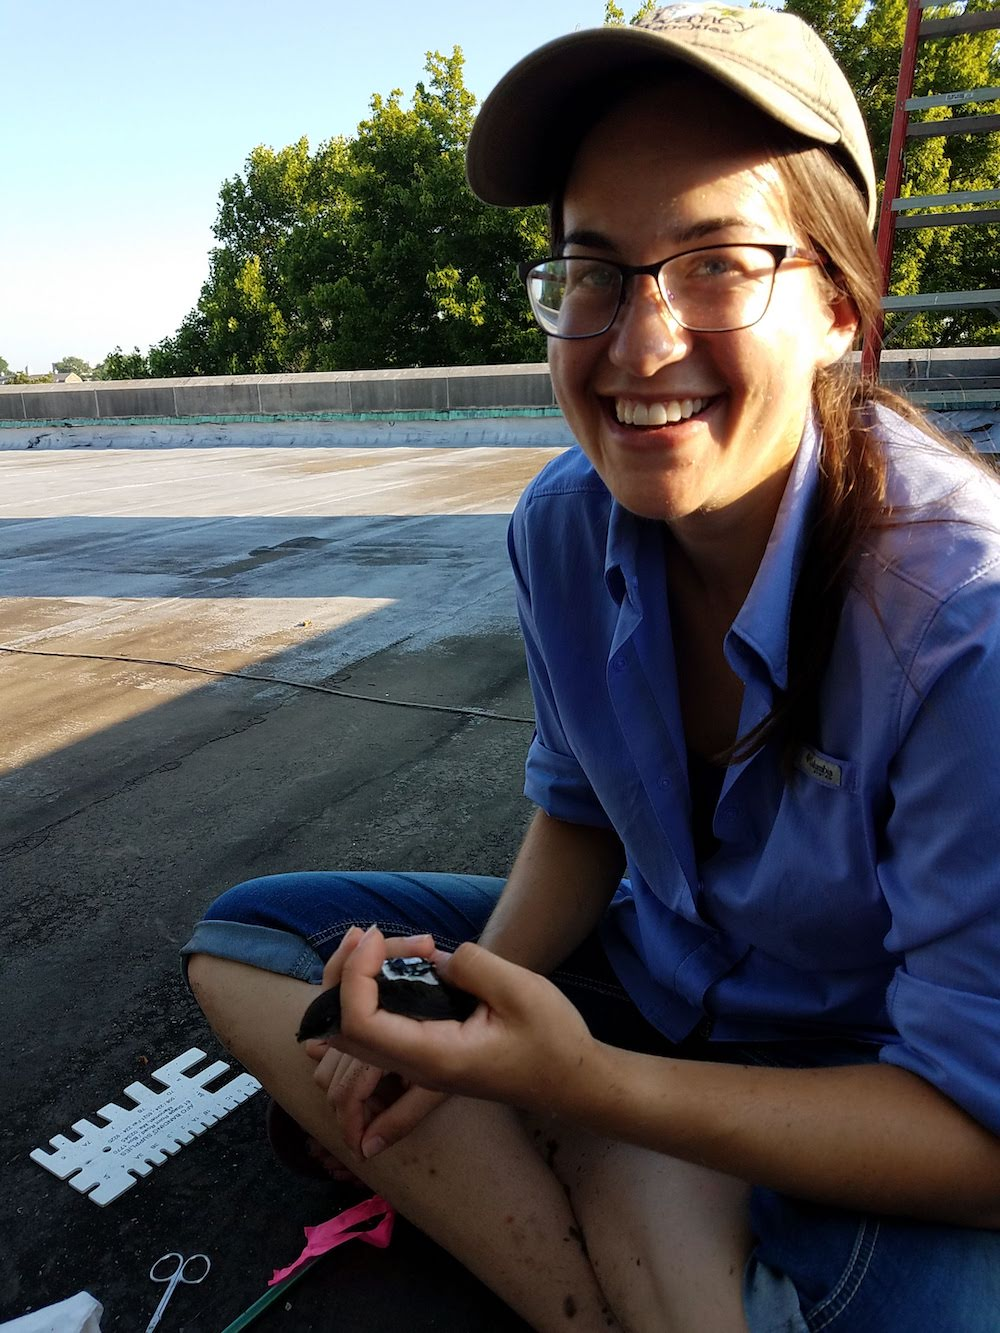 A biologist sitting cross-legged is holding a small black bird in her hand.  She is sitting on a flat rooftop. Tree canopies are in the background. Assorted tools for her work are in the foreground.